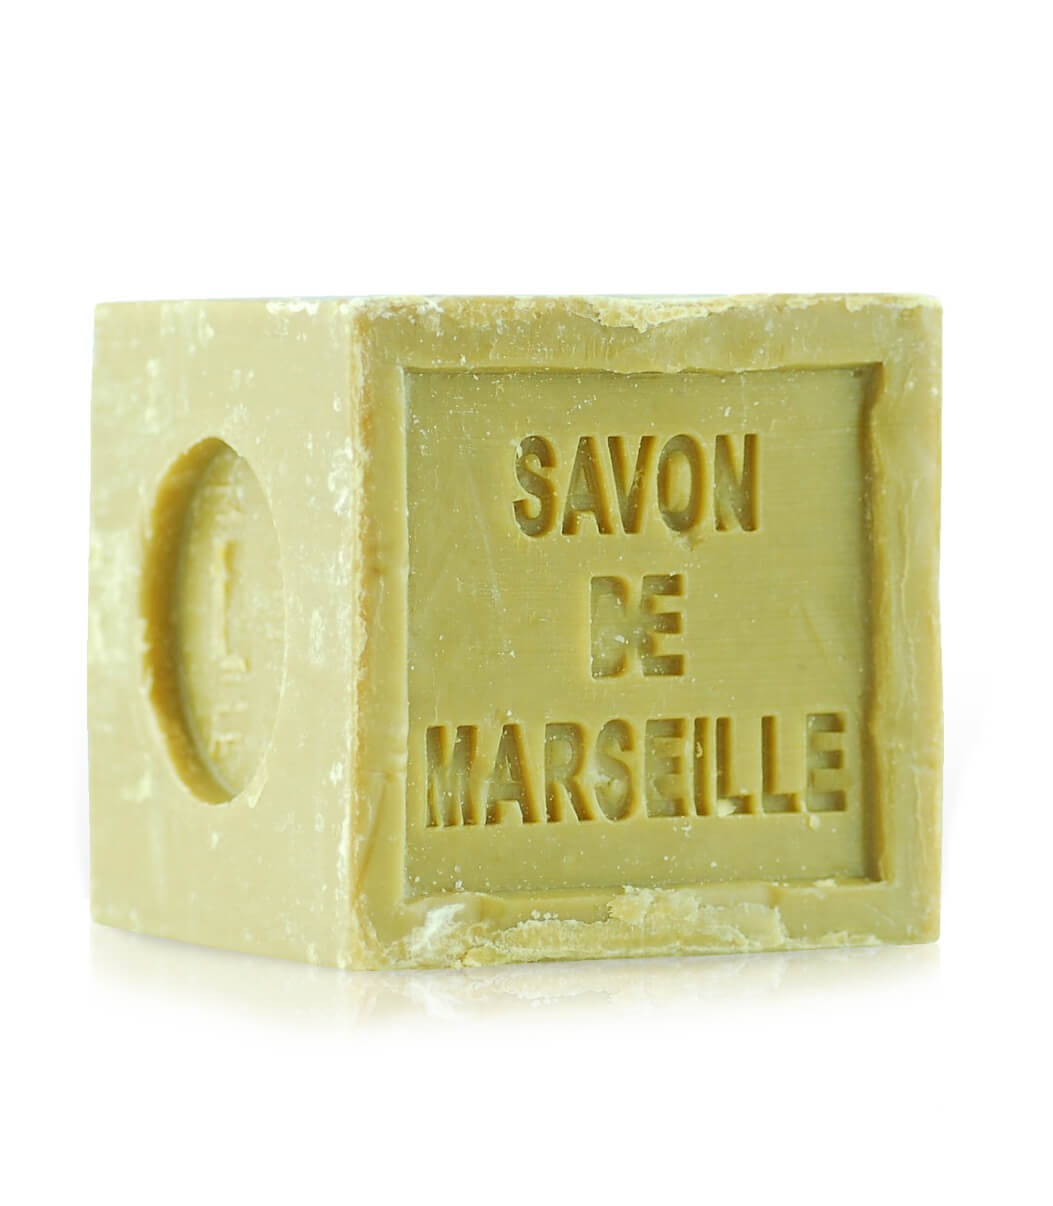 Savon de marseille le cube traditionnel th ophile berthon - Fabrique de savon de marseille ...